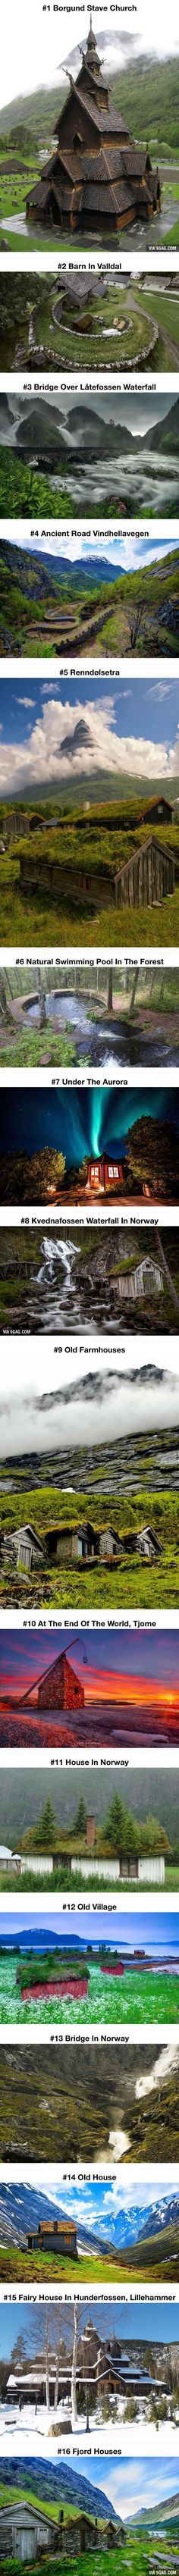 Beautiful Fairy Tale Architecture From Norway | DailyFailCenter